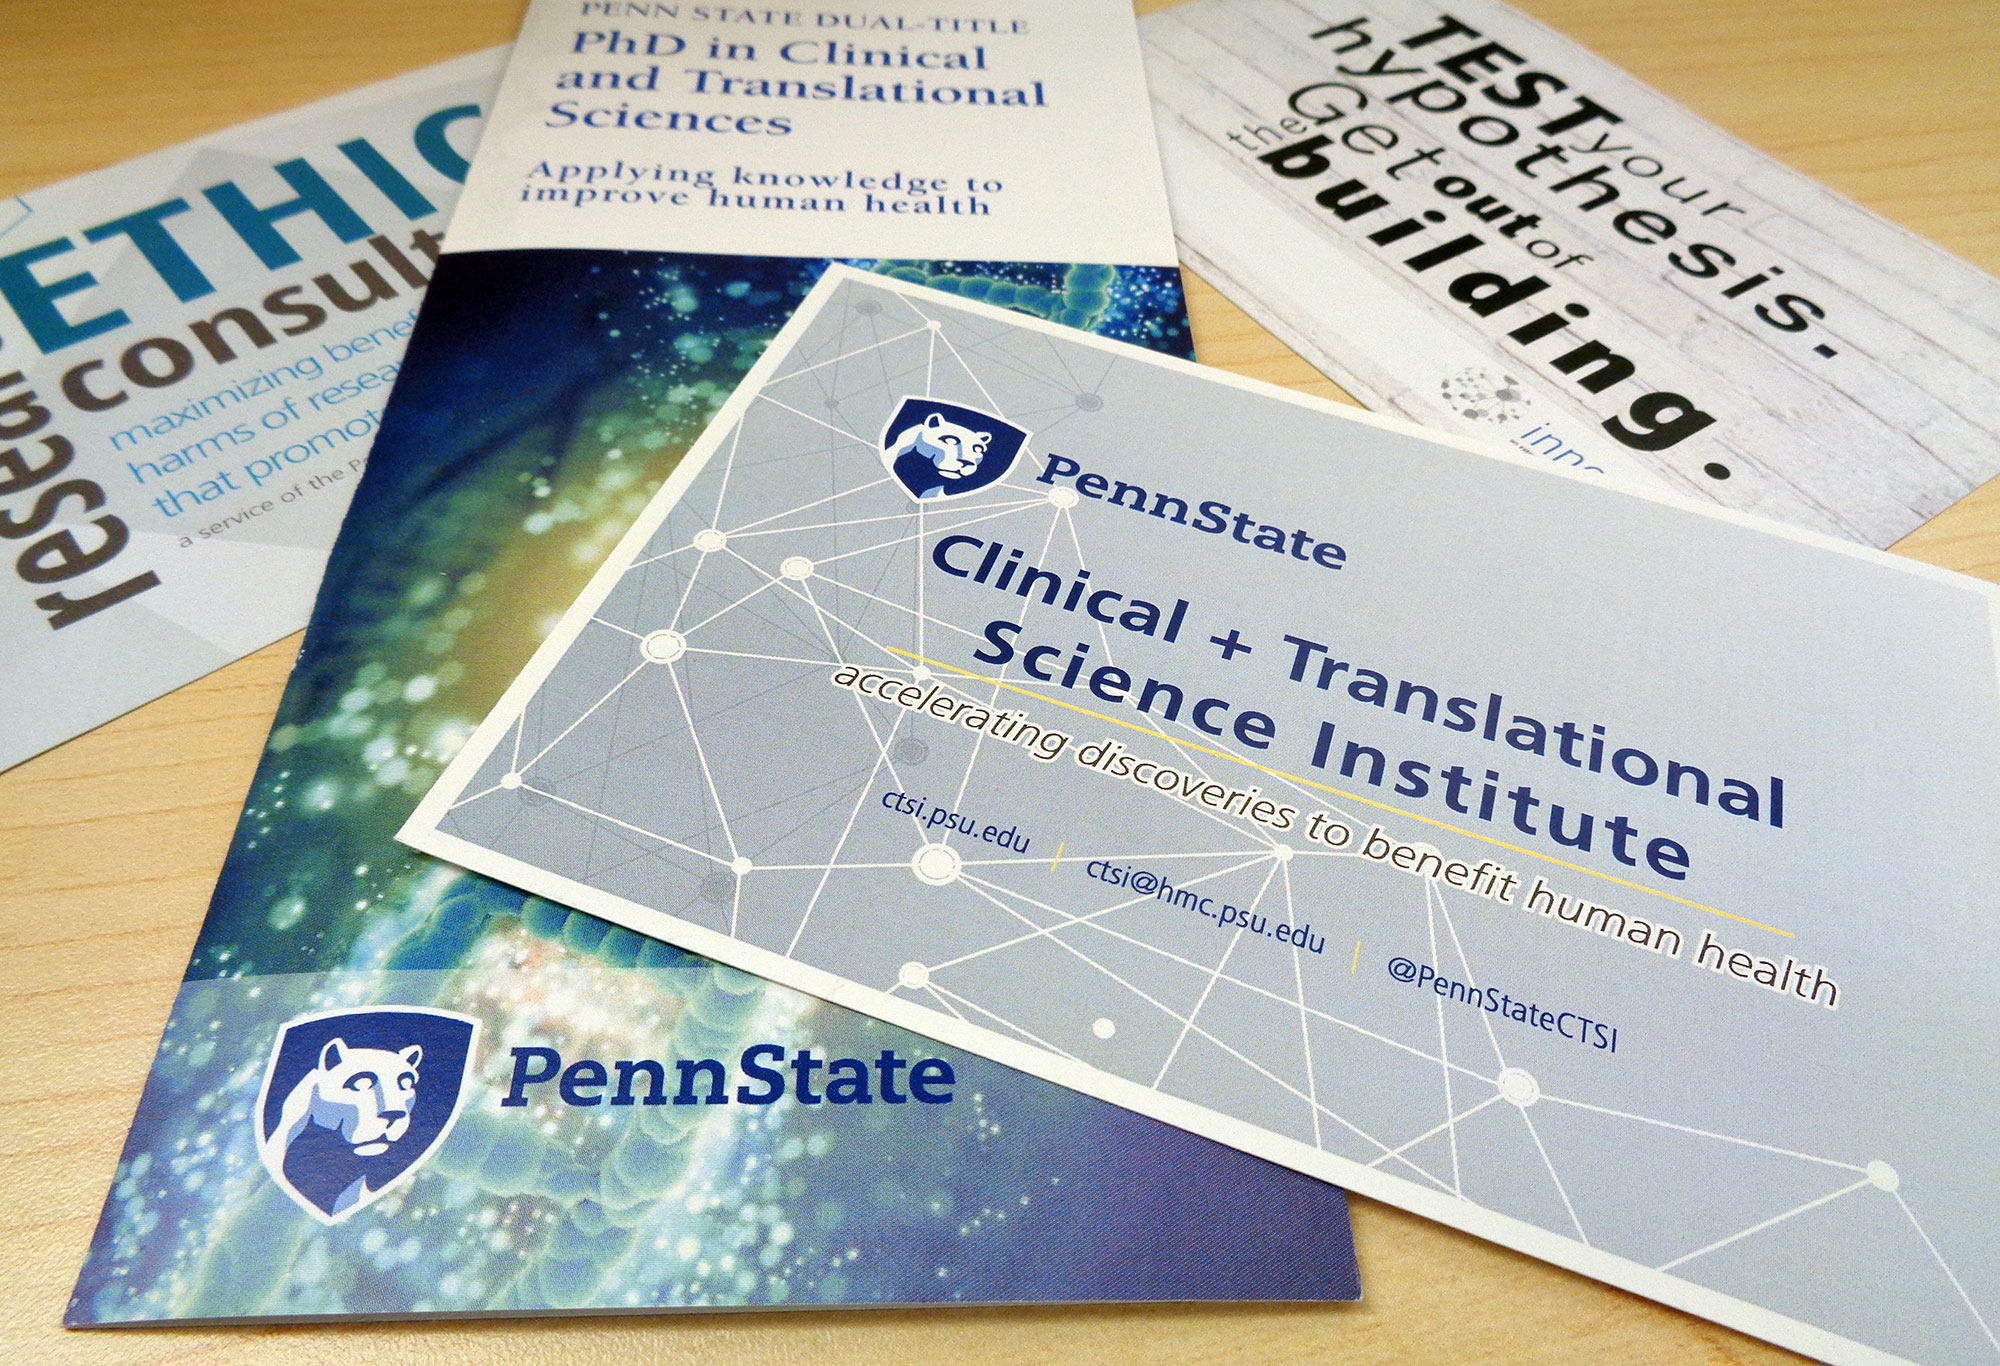 New data discovery tool can help clinical researchers penn state a promotional image for penn state clinical and translational science institute shows a number of pamplets colourmoves